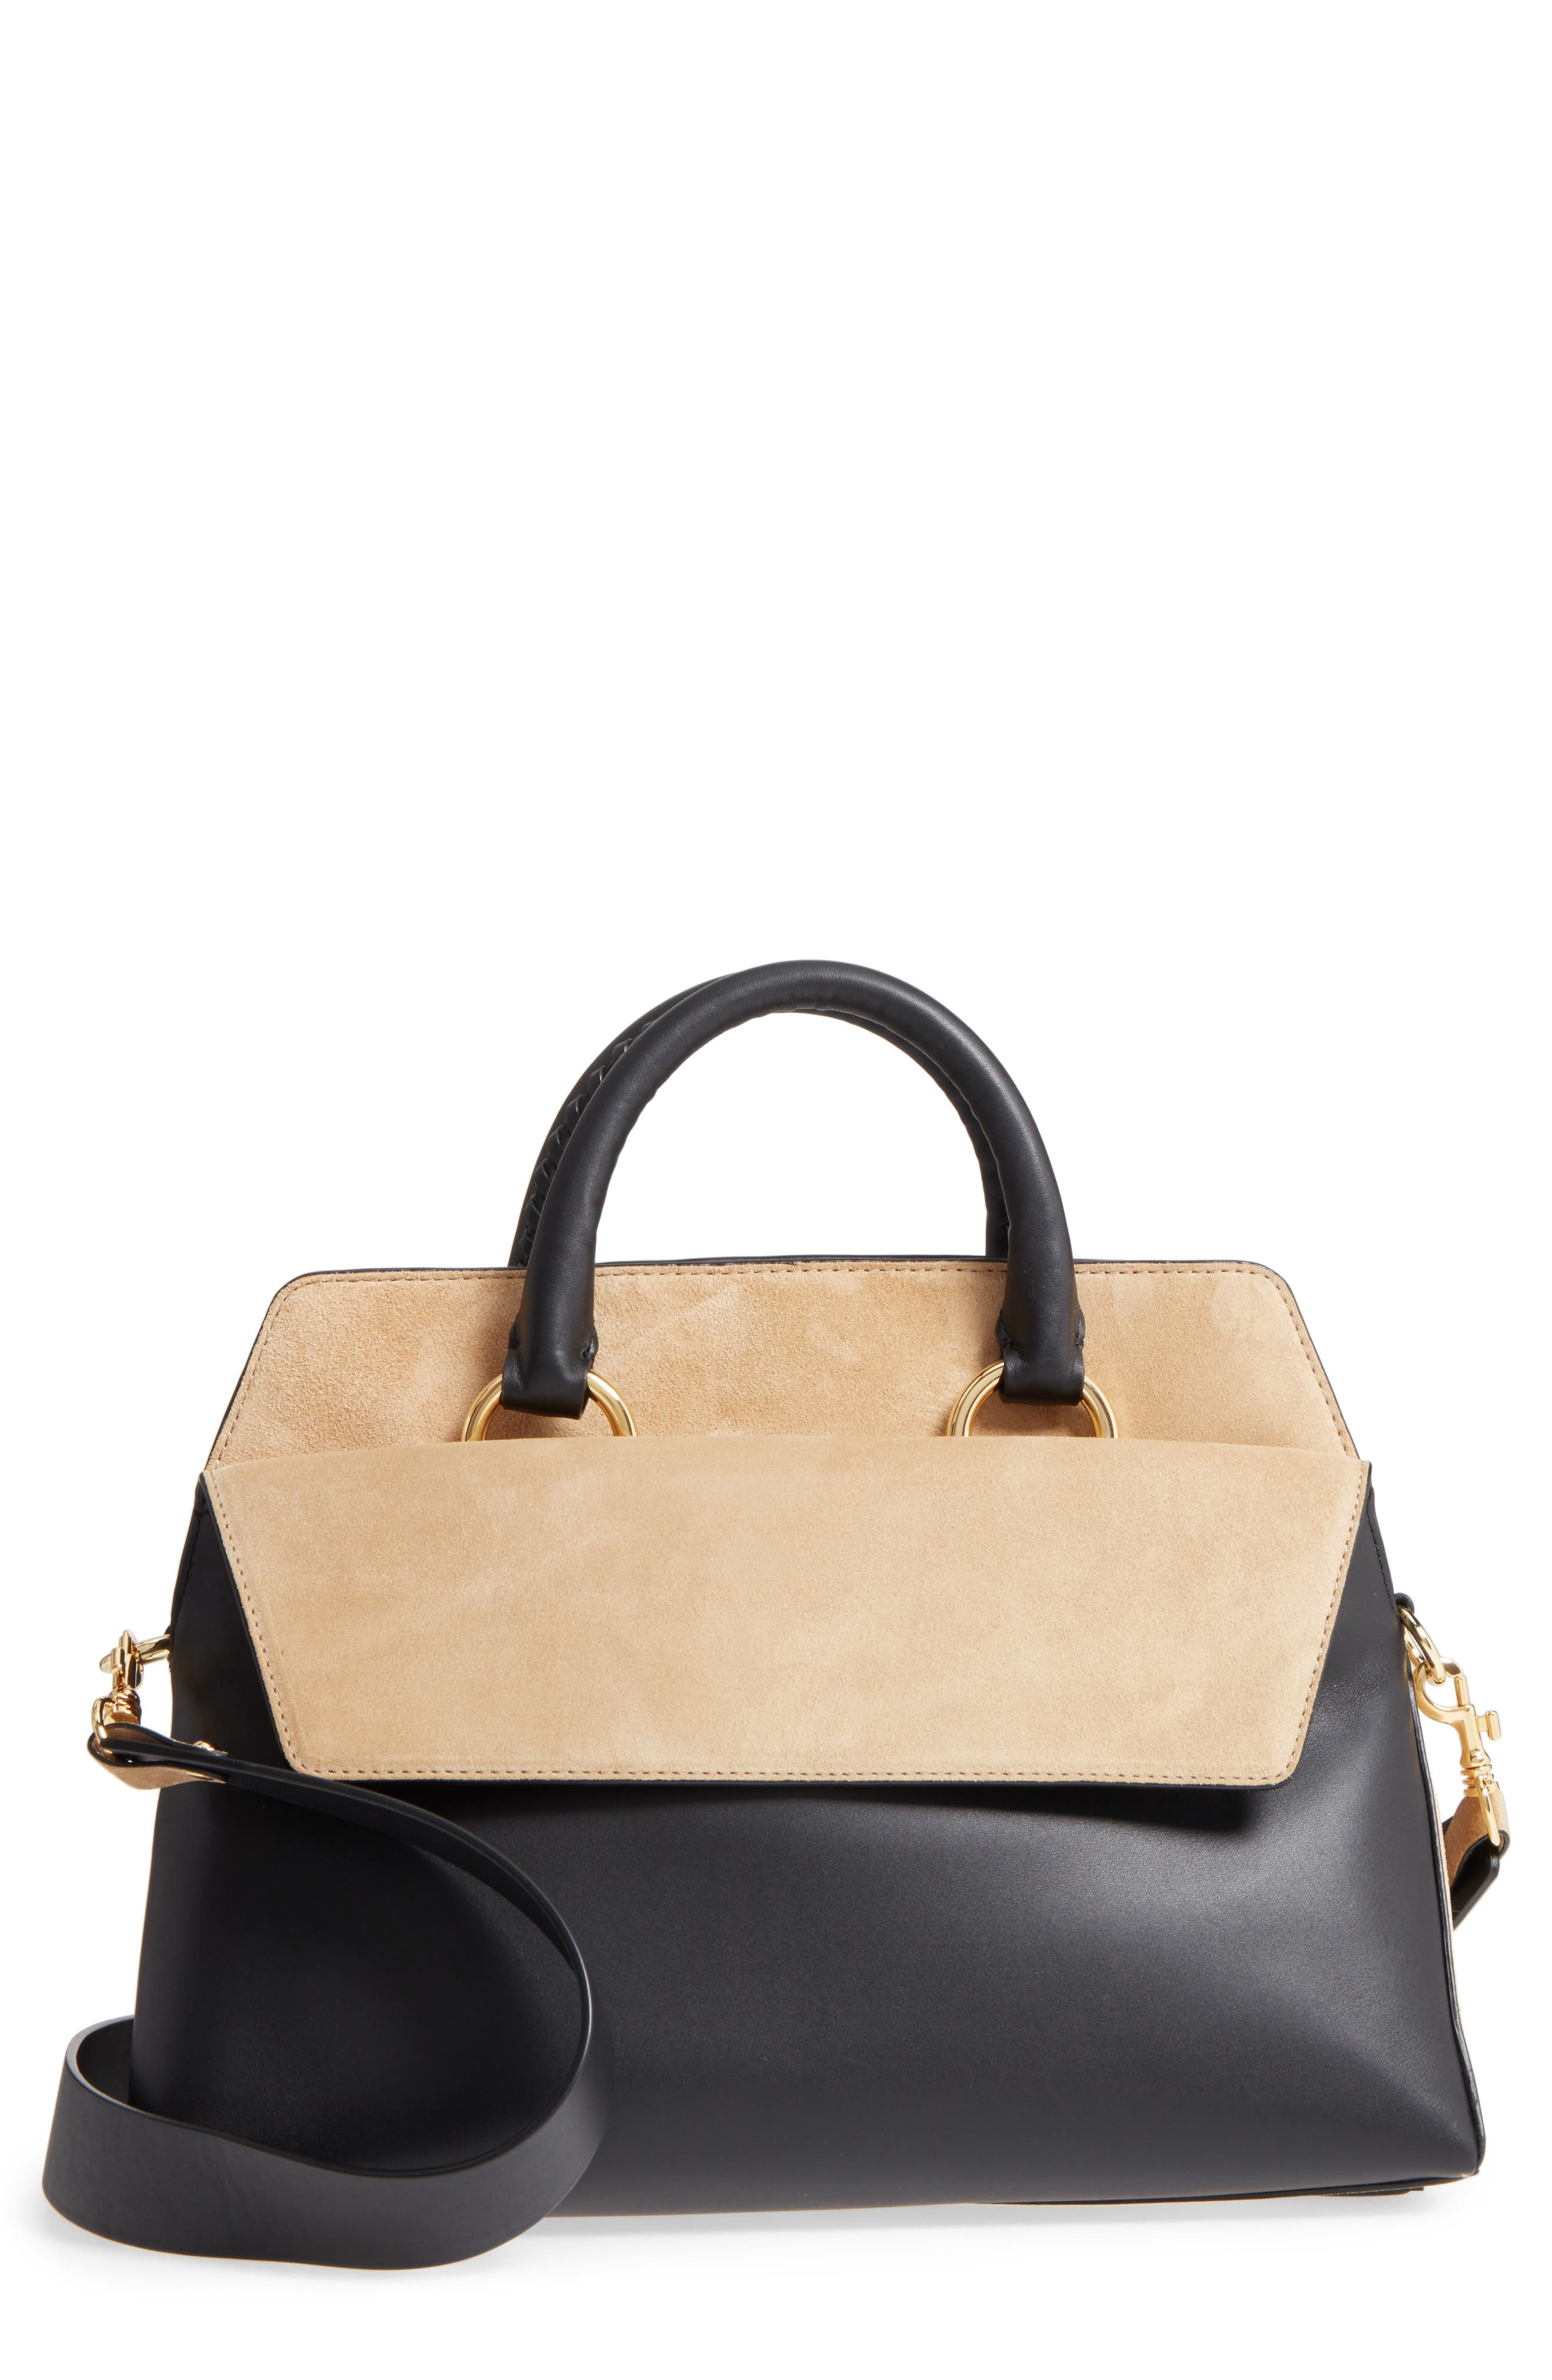 Diane von Furstenberg Large Leather & Suede Satchel